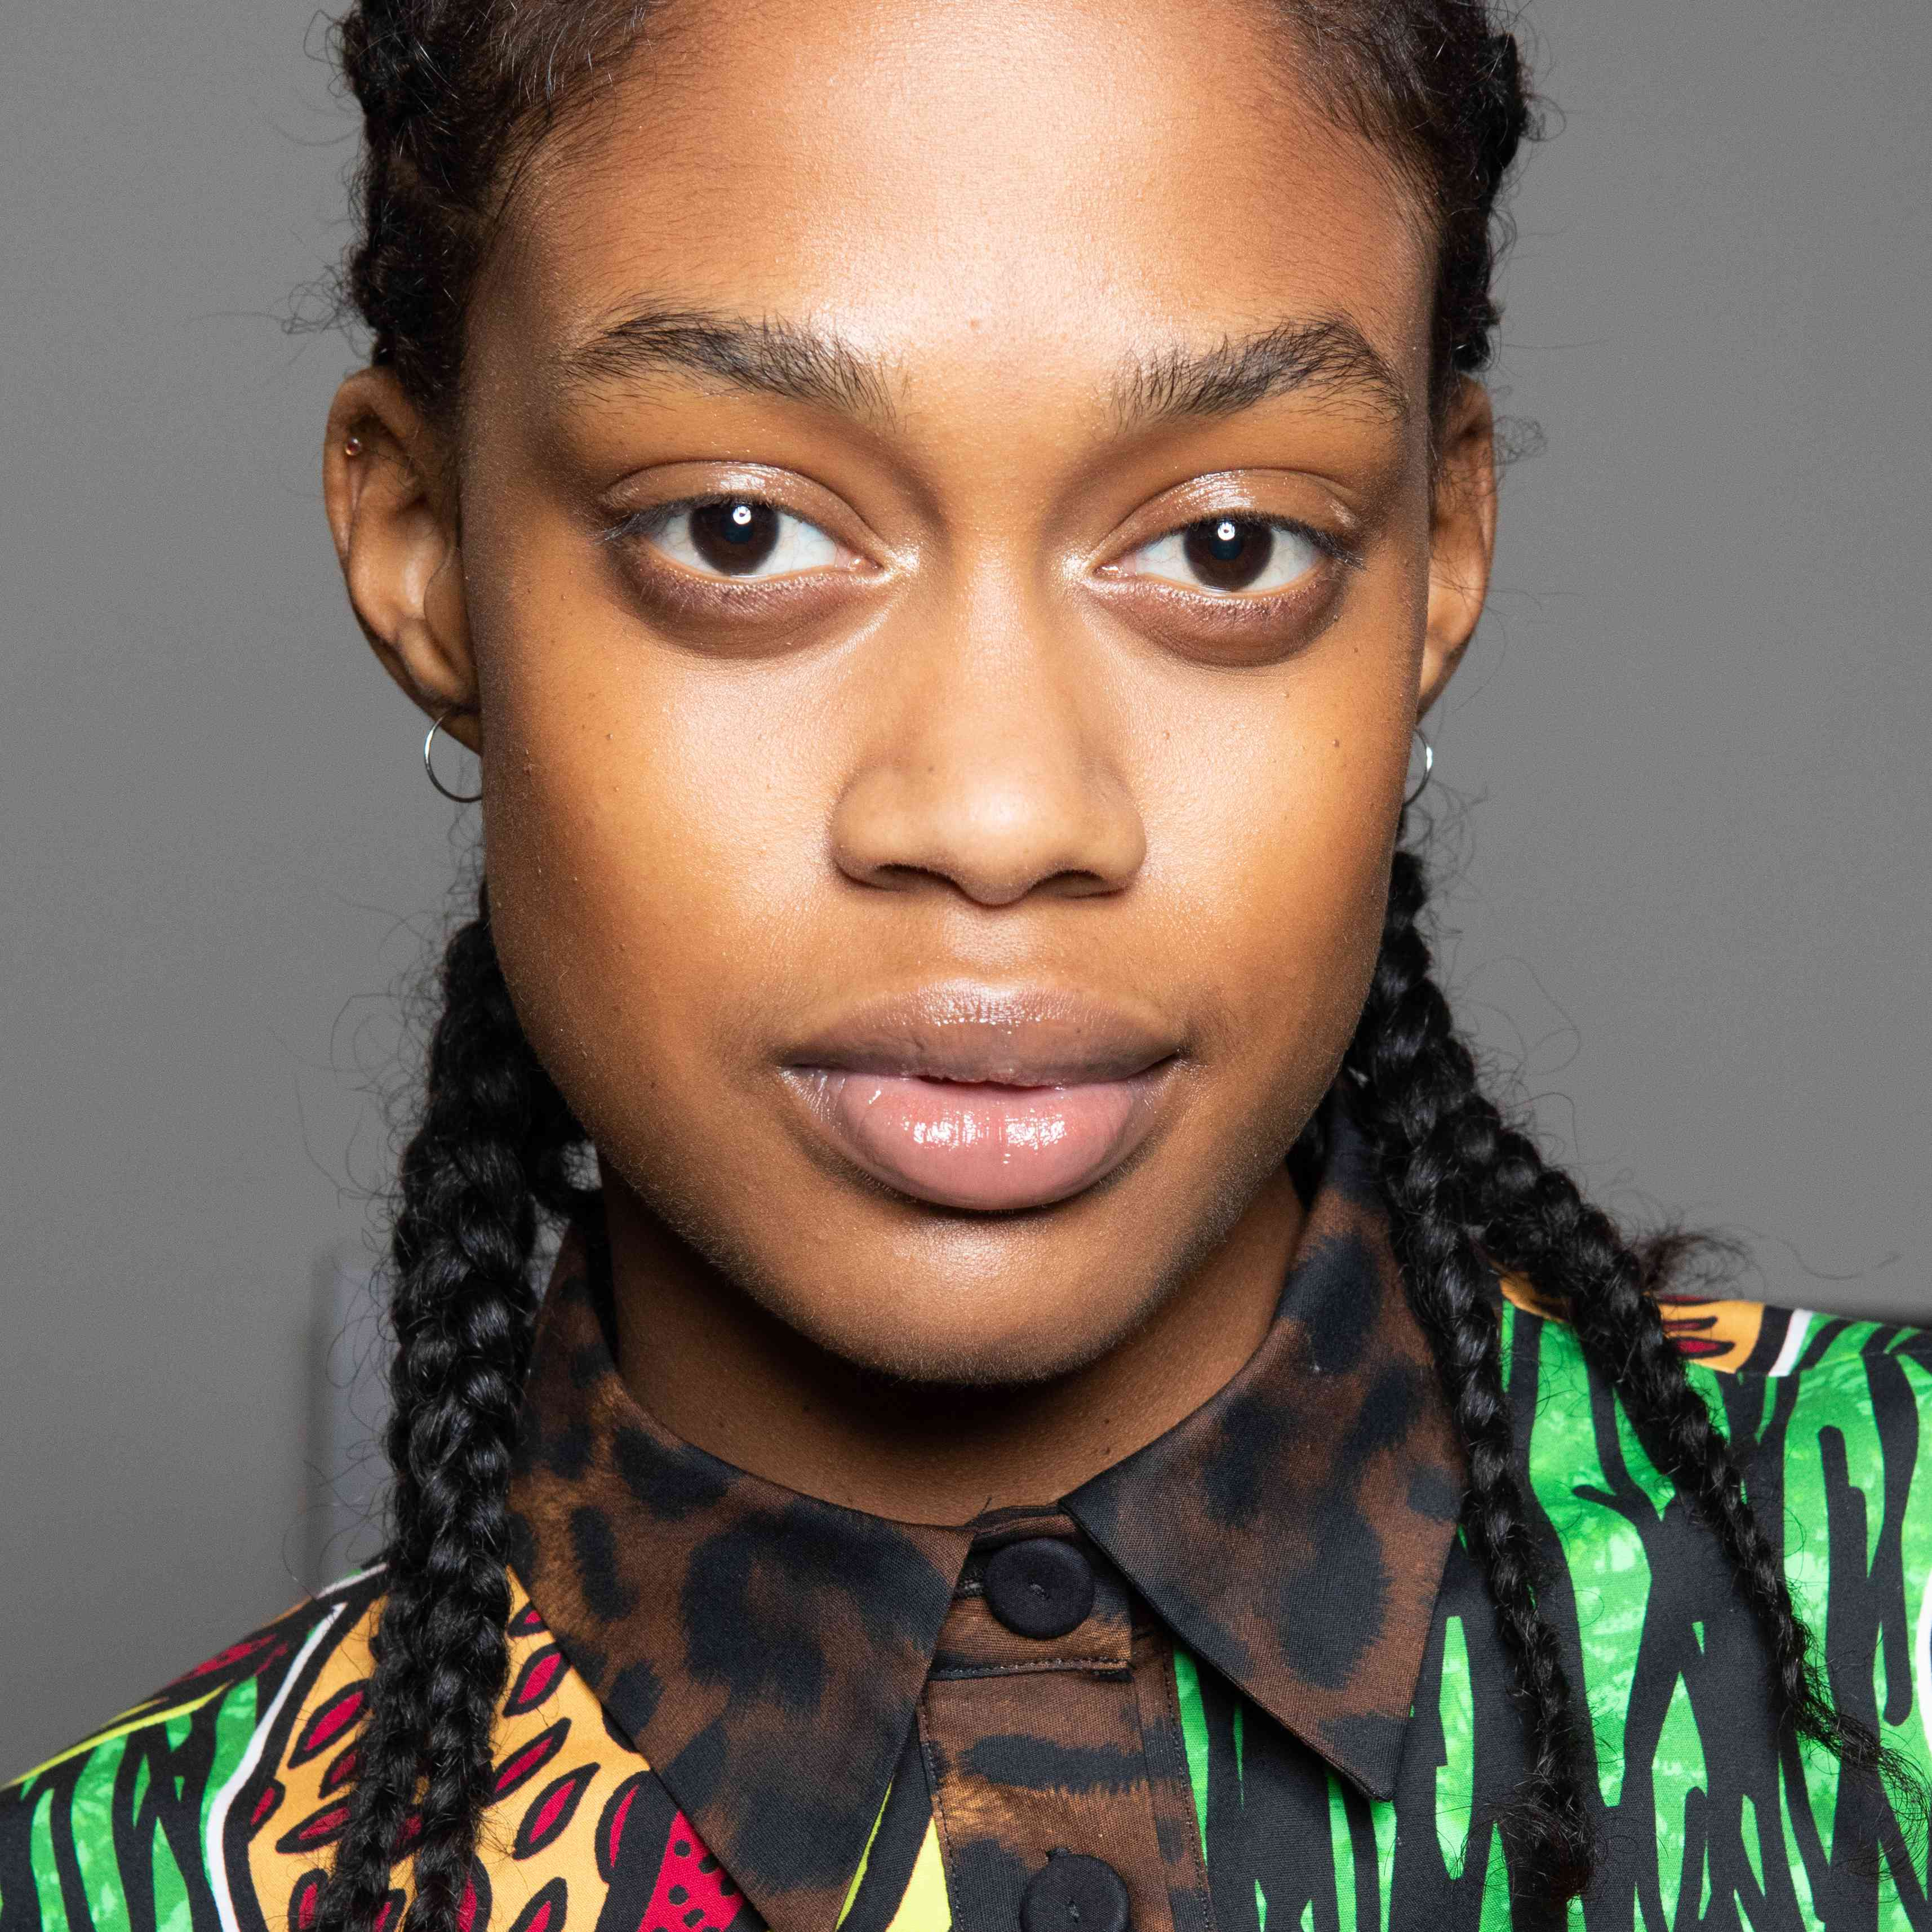 Black woman with braids and bold brows